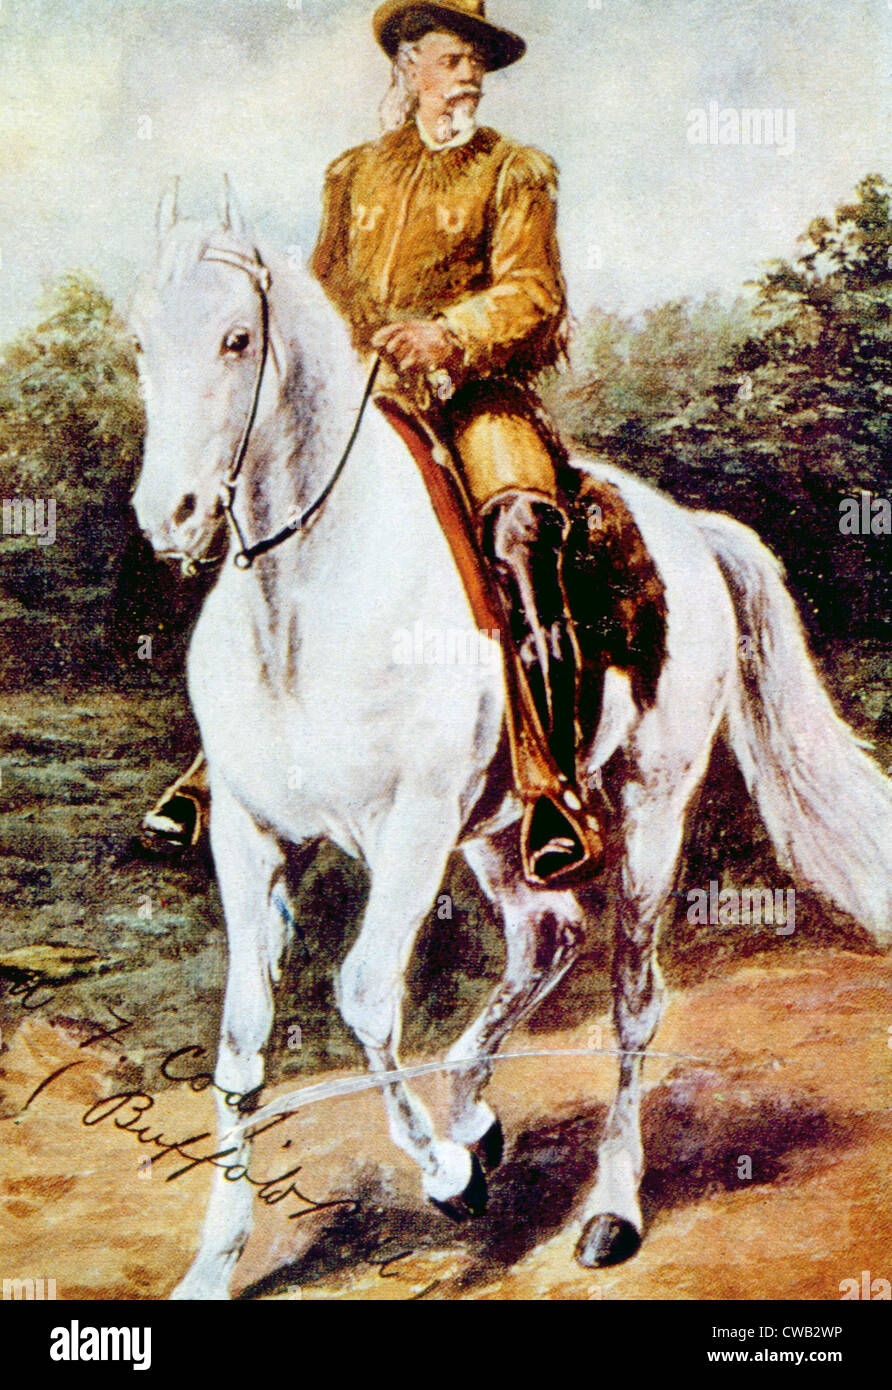 william buffalo bill cody The discovery of precious minerals near tucson attracted the famous western  entertainer william buffalo bill cody to oracle in the early 1900s to invest in.